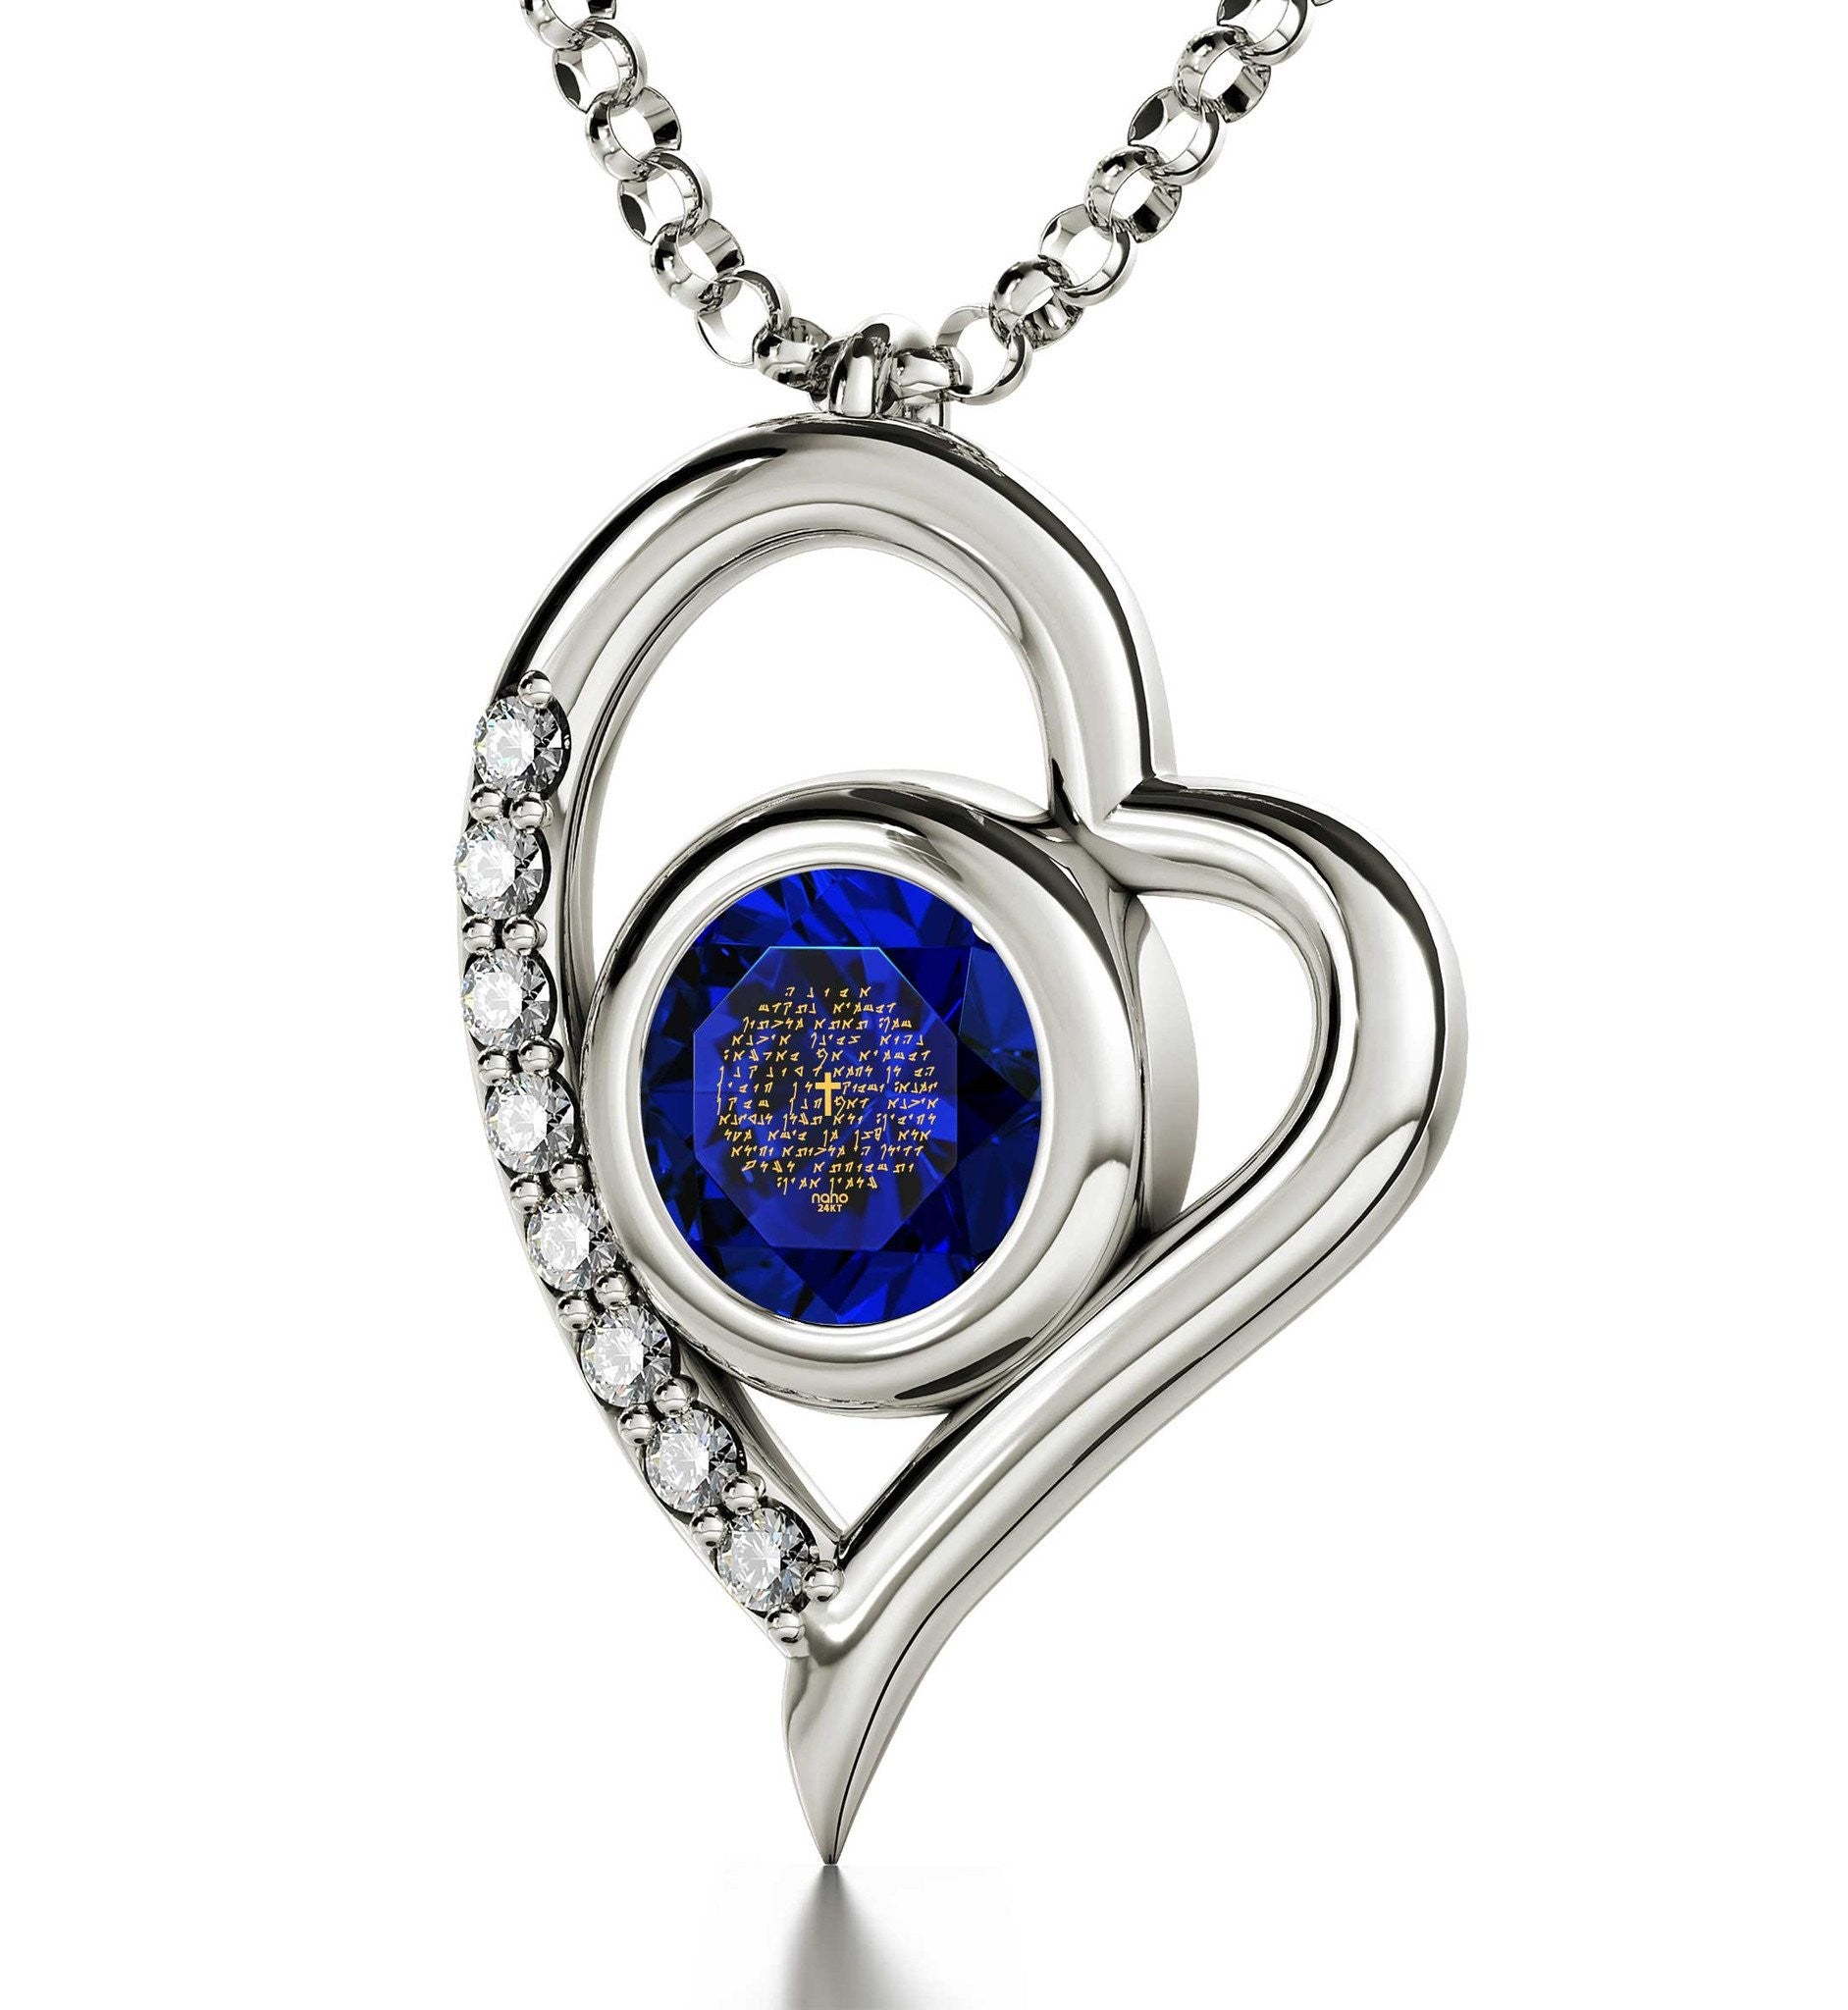 """""Our Father"" Inscribed in Aramiac, Heart Necklaces for Girlfriend, Christmas Presents for Mum, Lord's Prayer Necklace """